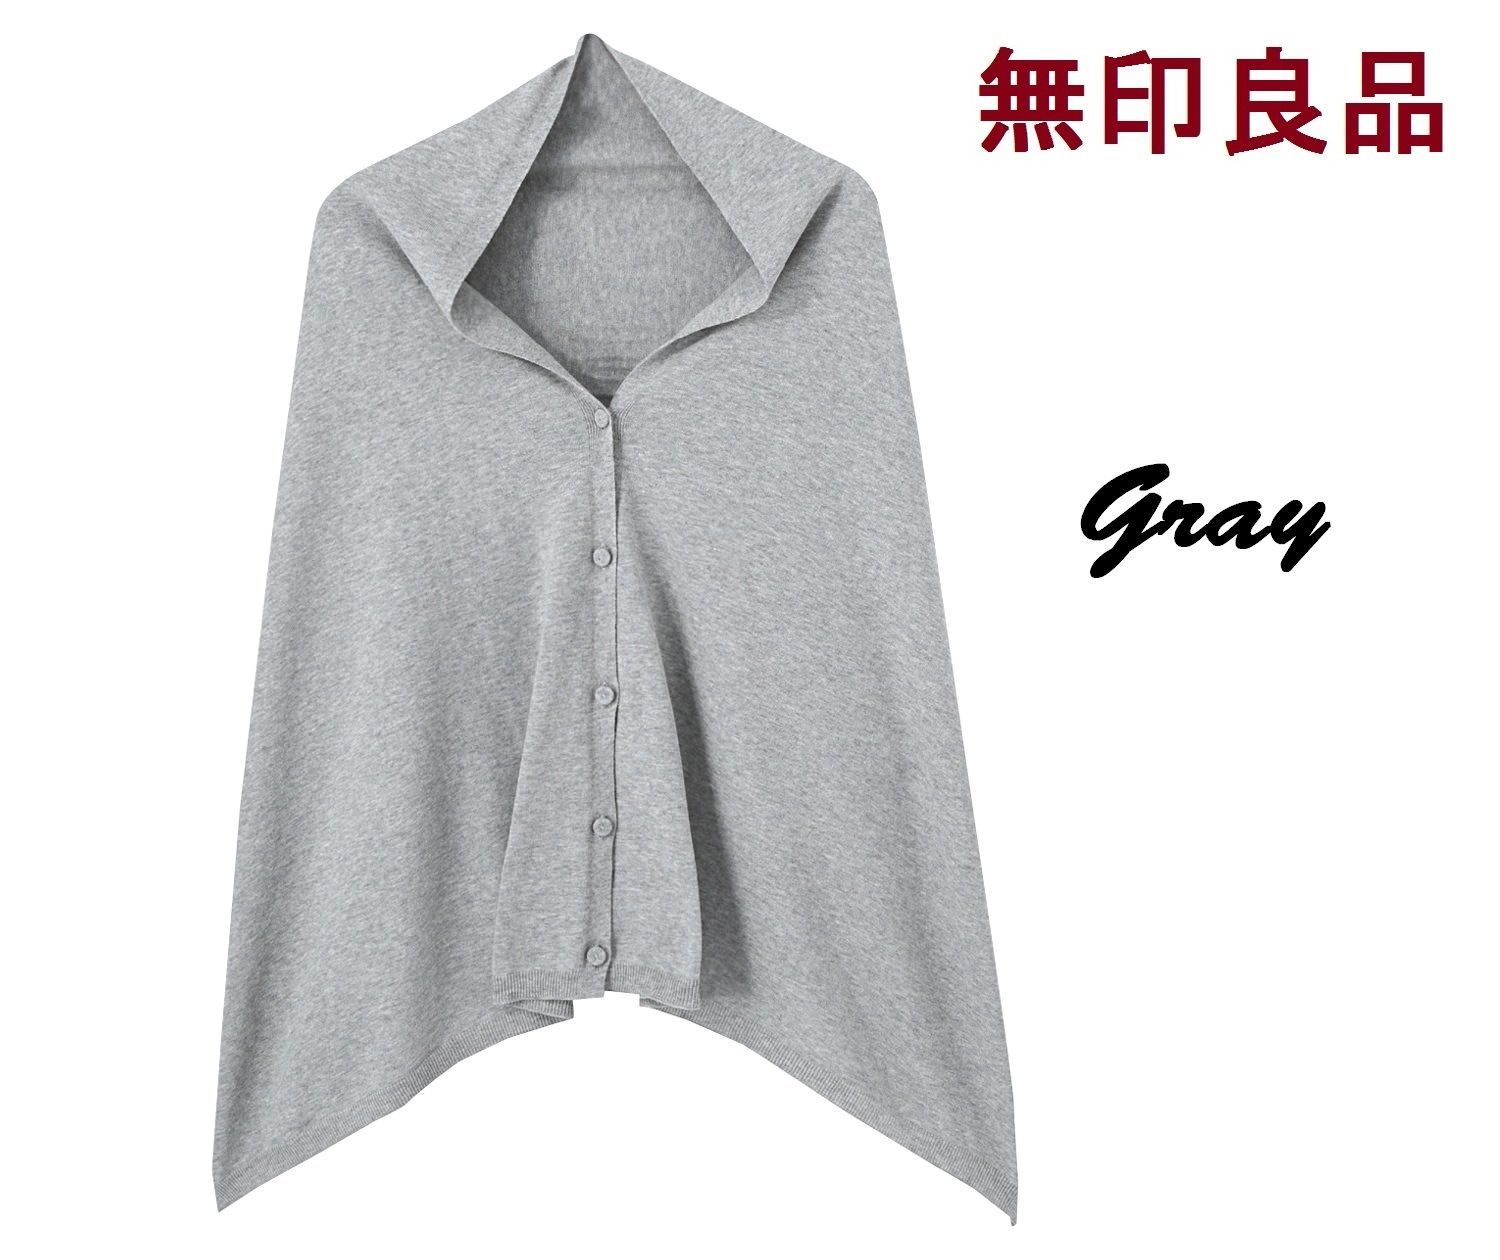 MUJI Gray UltraViolet Sun Protective Cape With Button Scarf Shawl Stole Muffler for sale online | eBay